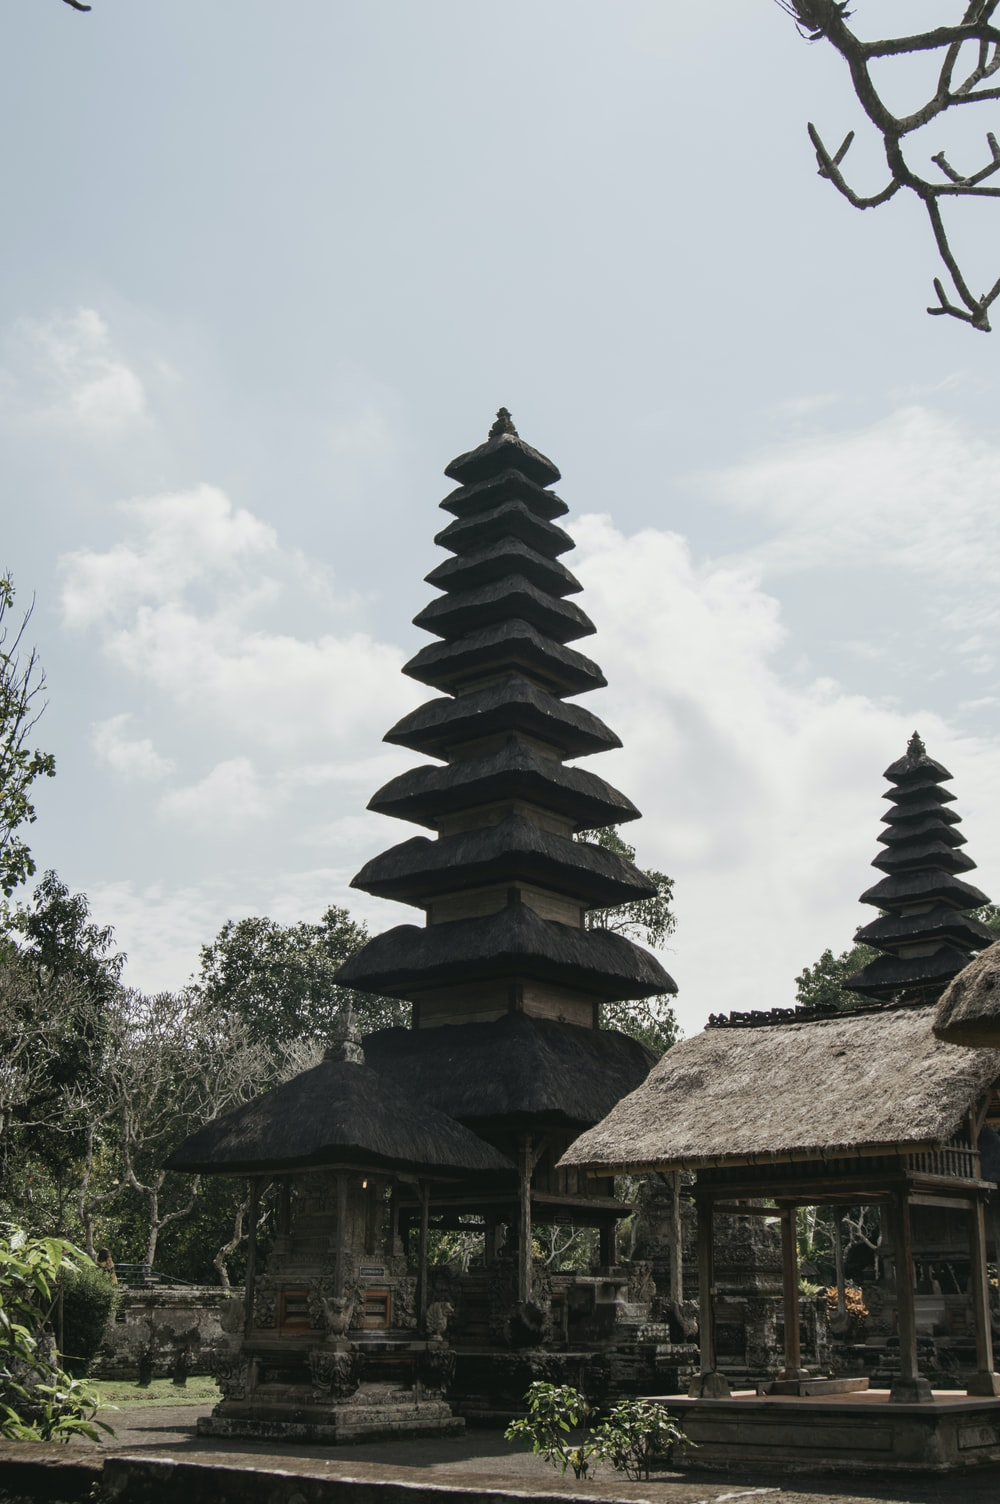 brown and black tower temple